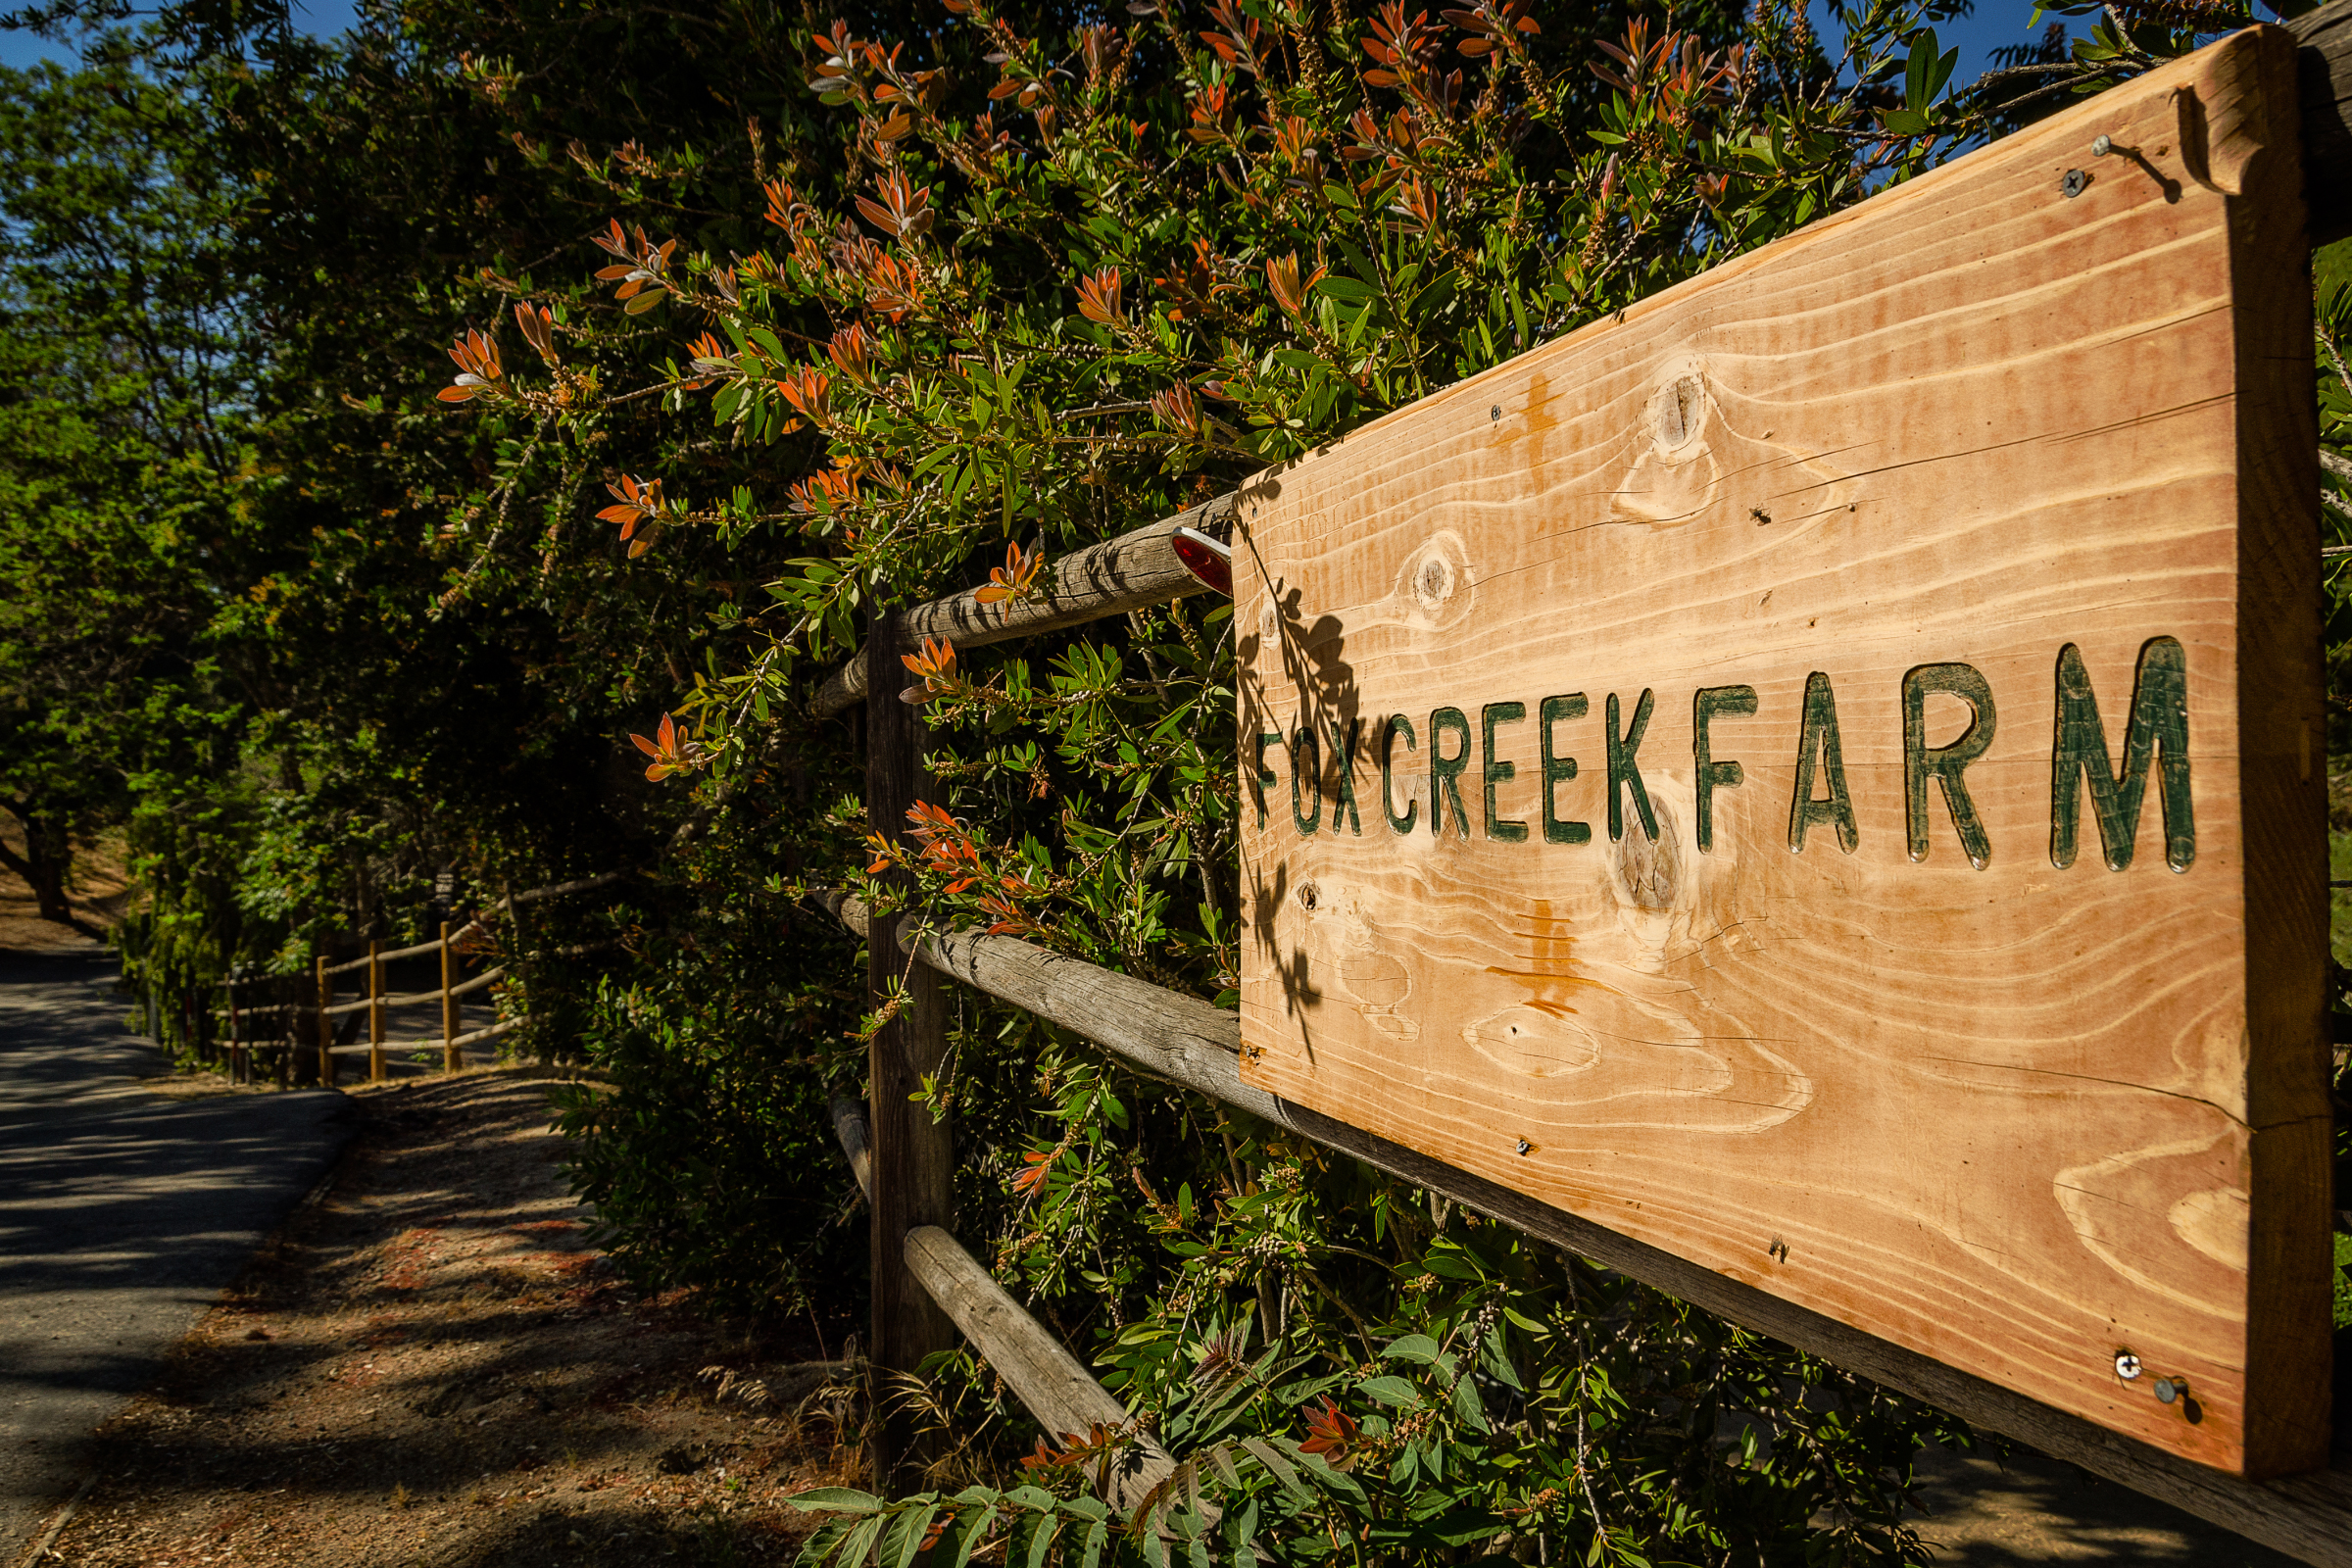 Fox Creek Farm. Mulholland. Calabasas, California. Wasim Muklashy Photography